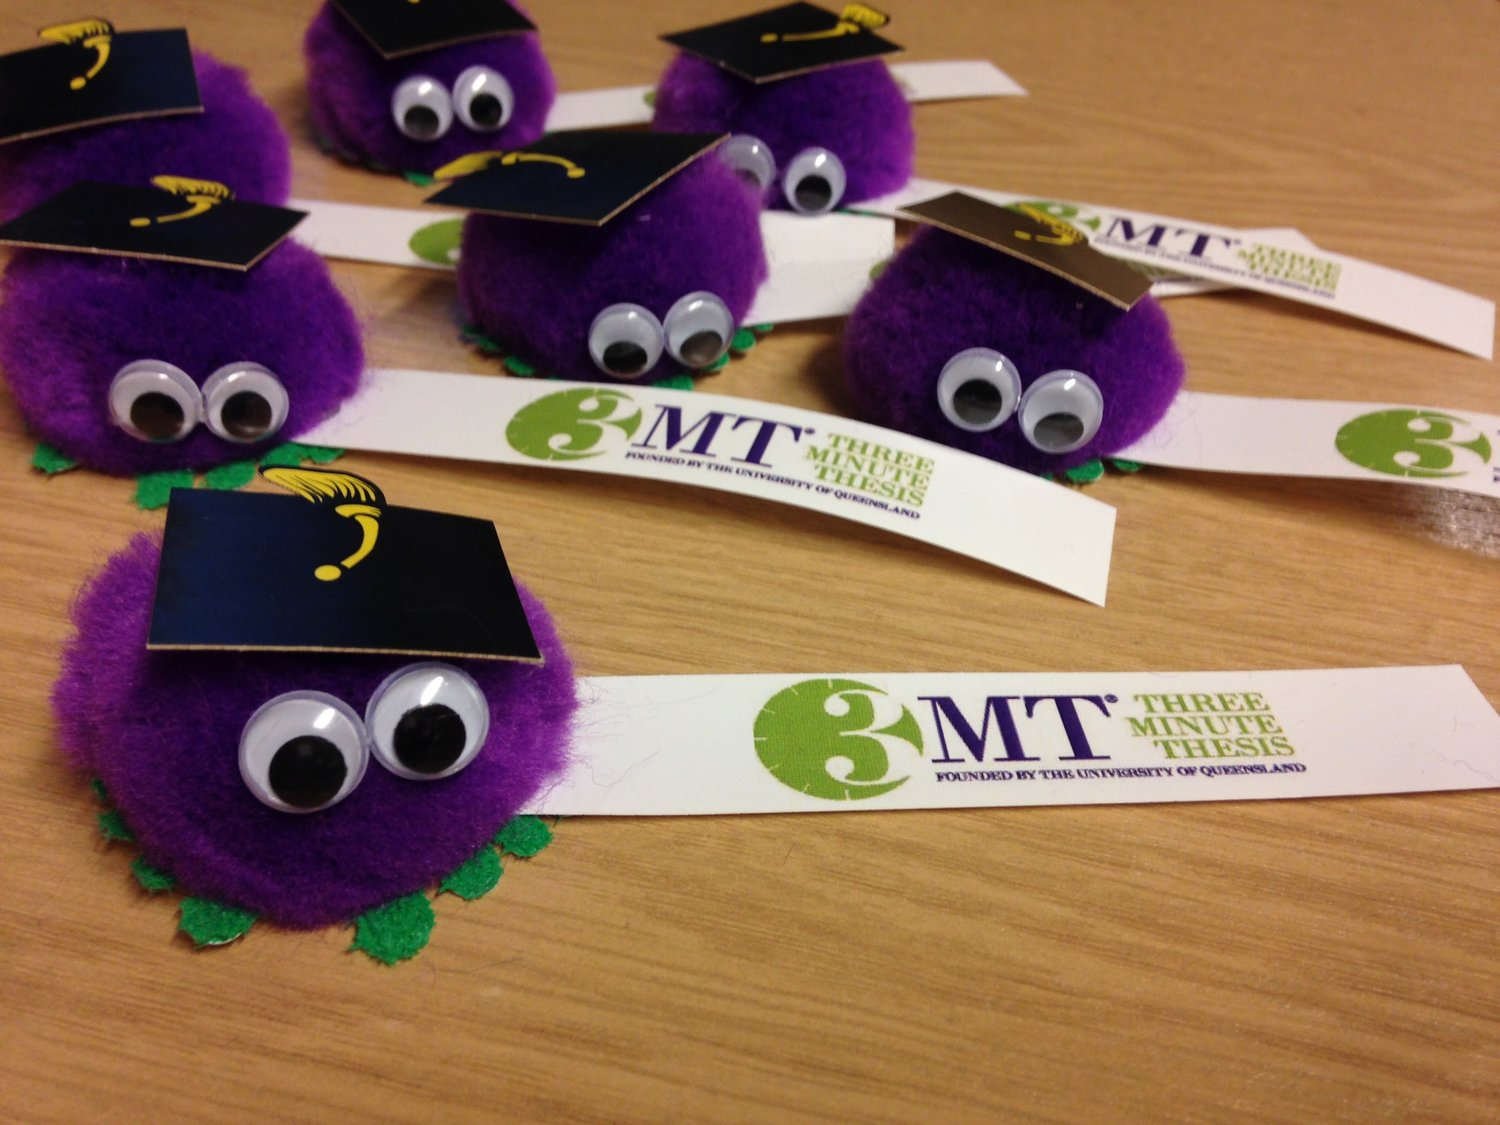 3mt bugs - image for ads.jpg